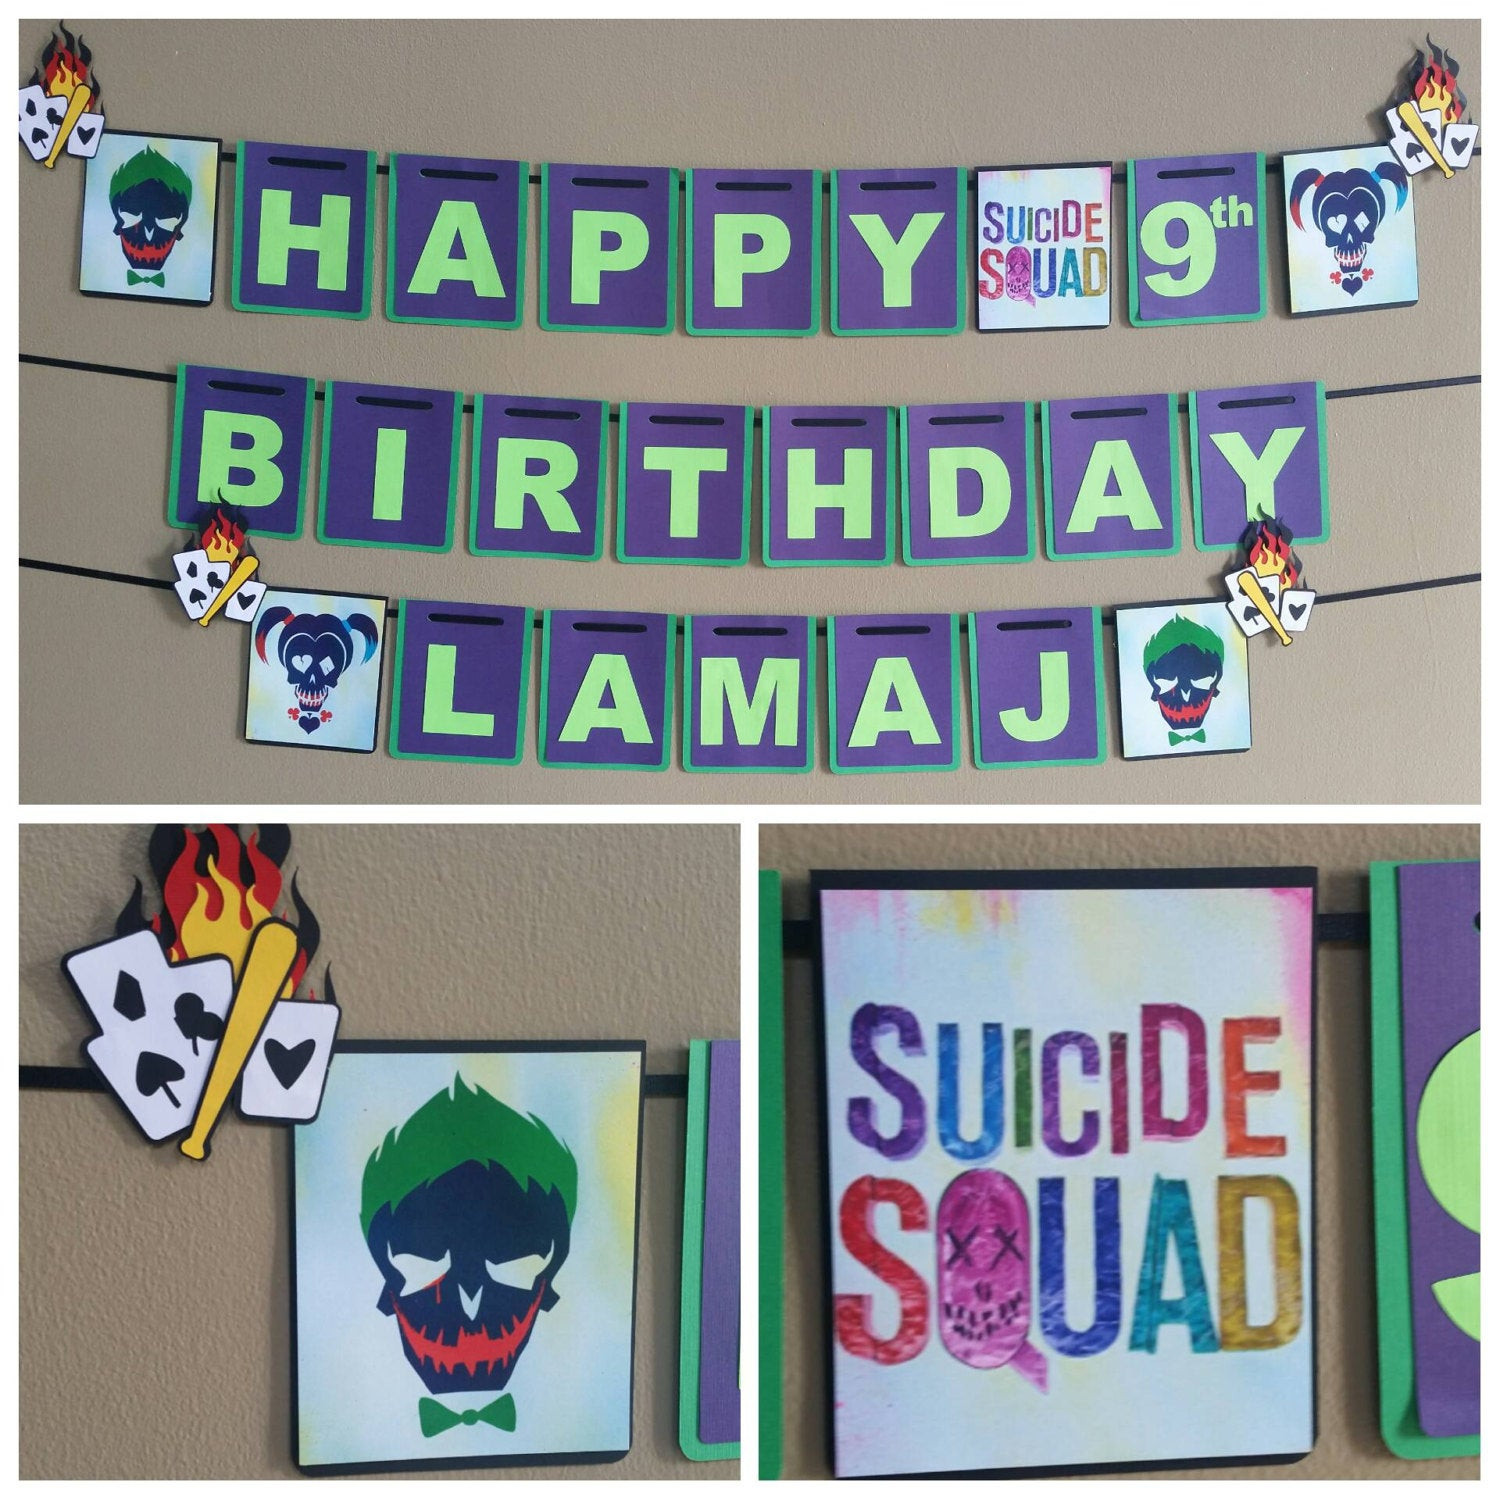 Best ideas about Suicide Squad Birthday Party . Save or Pin Suicide Squad Birthday Banner Suicide Squad Banner Suicide Now.